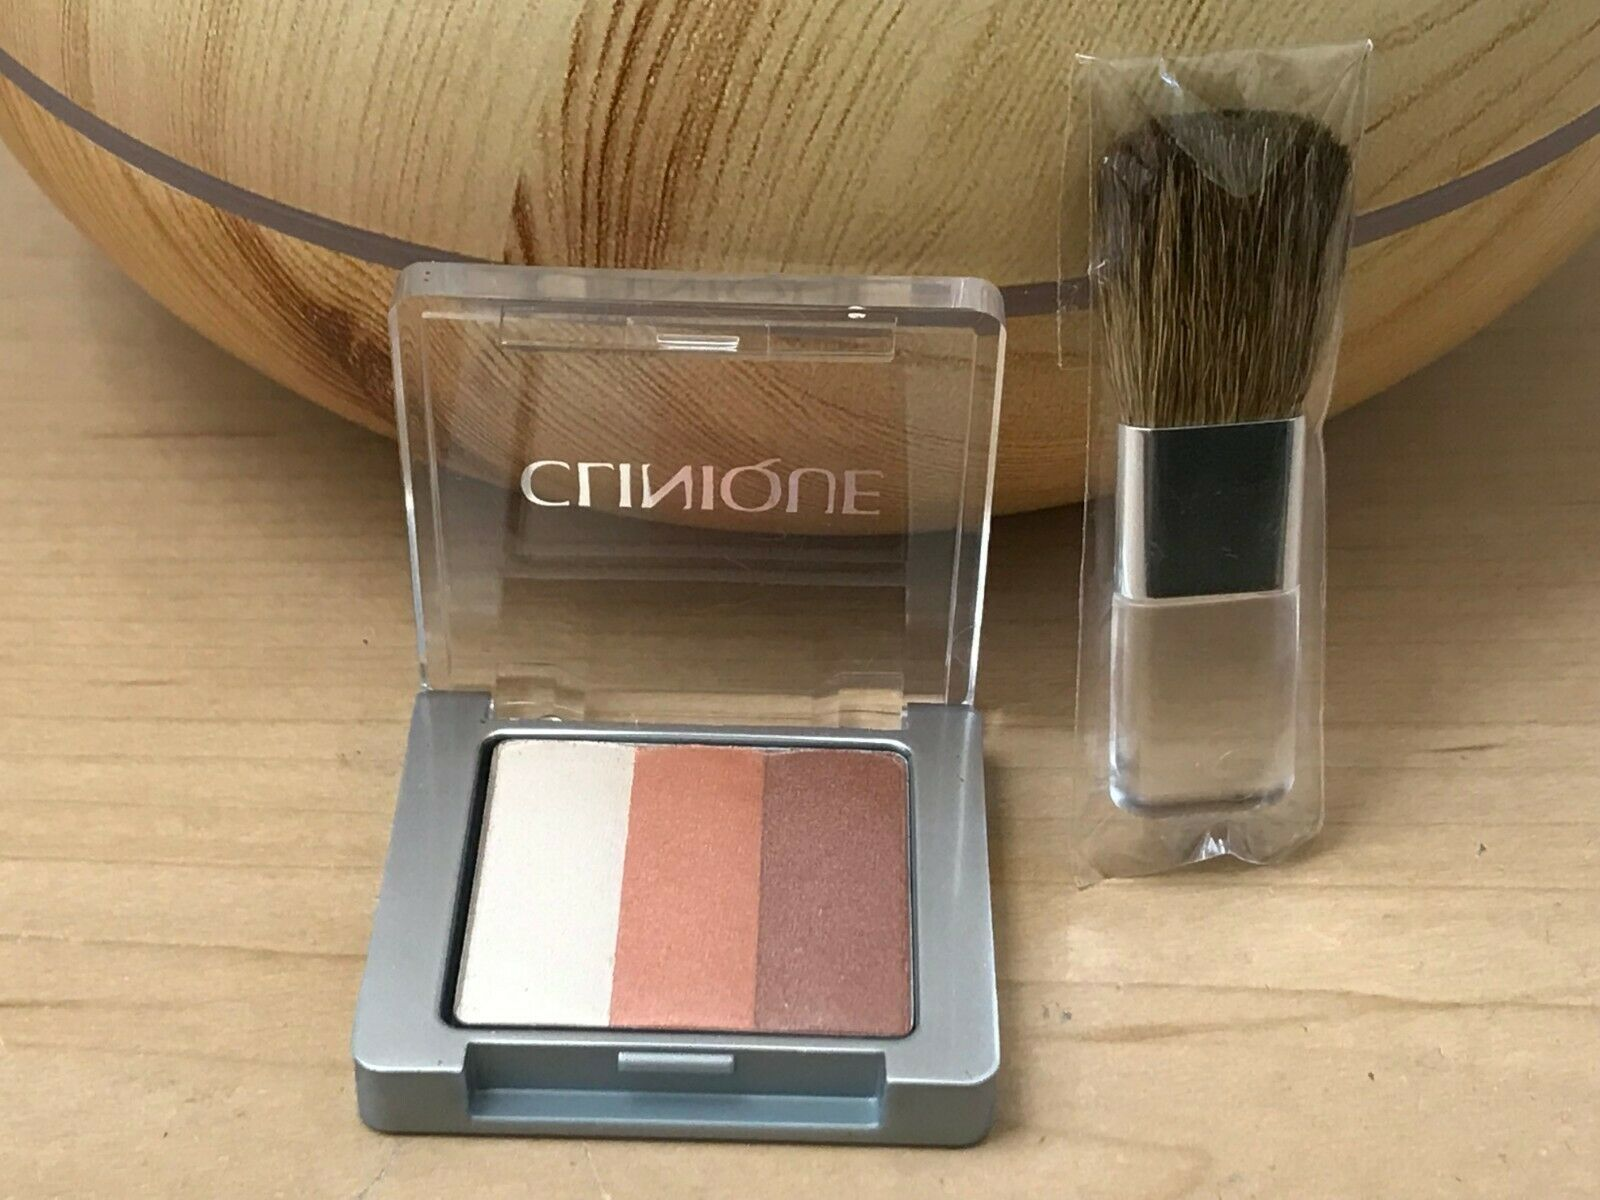 Primary image for New Clinique Shimmering Stripes Powder Blusher in 01 PEONY & mini Blush Brush